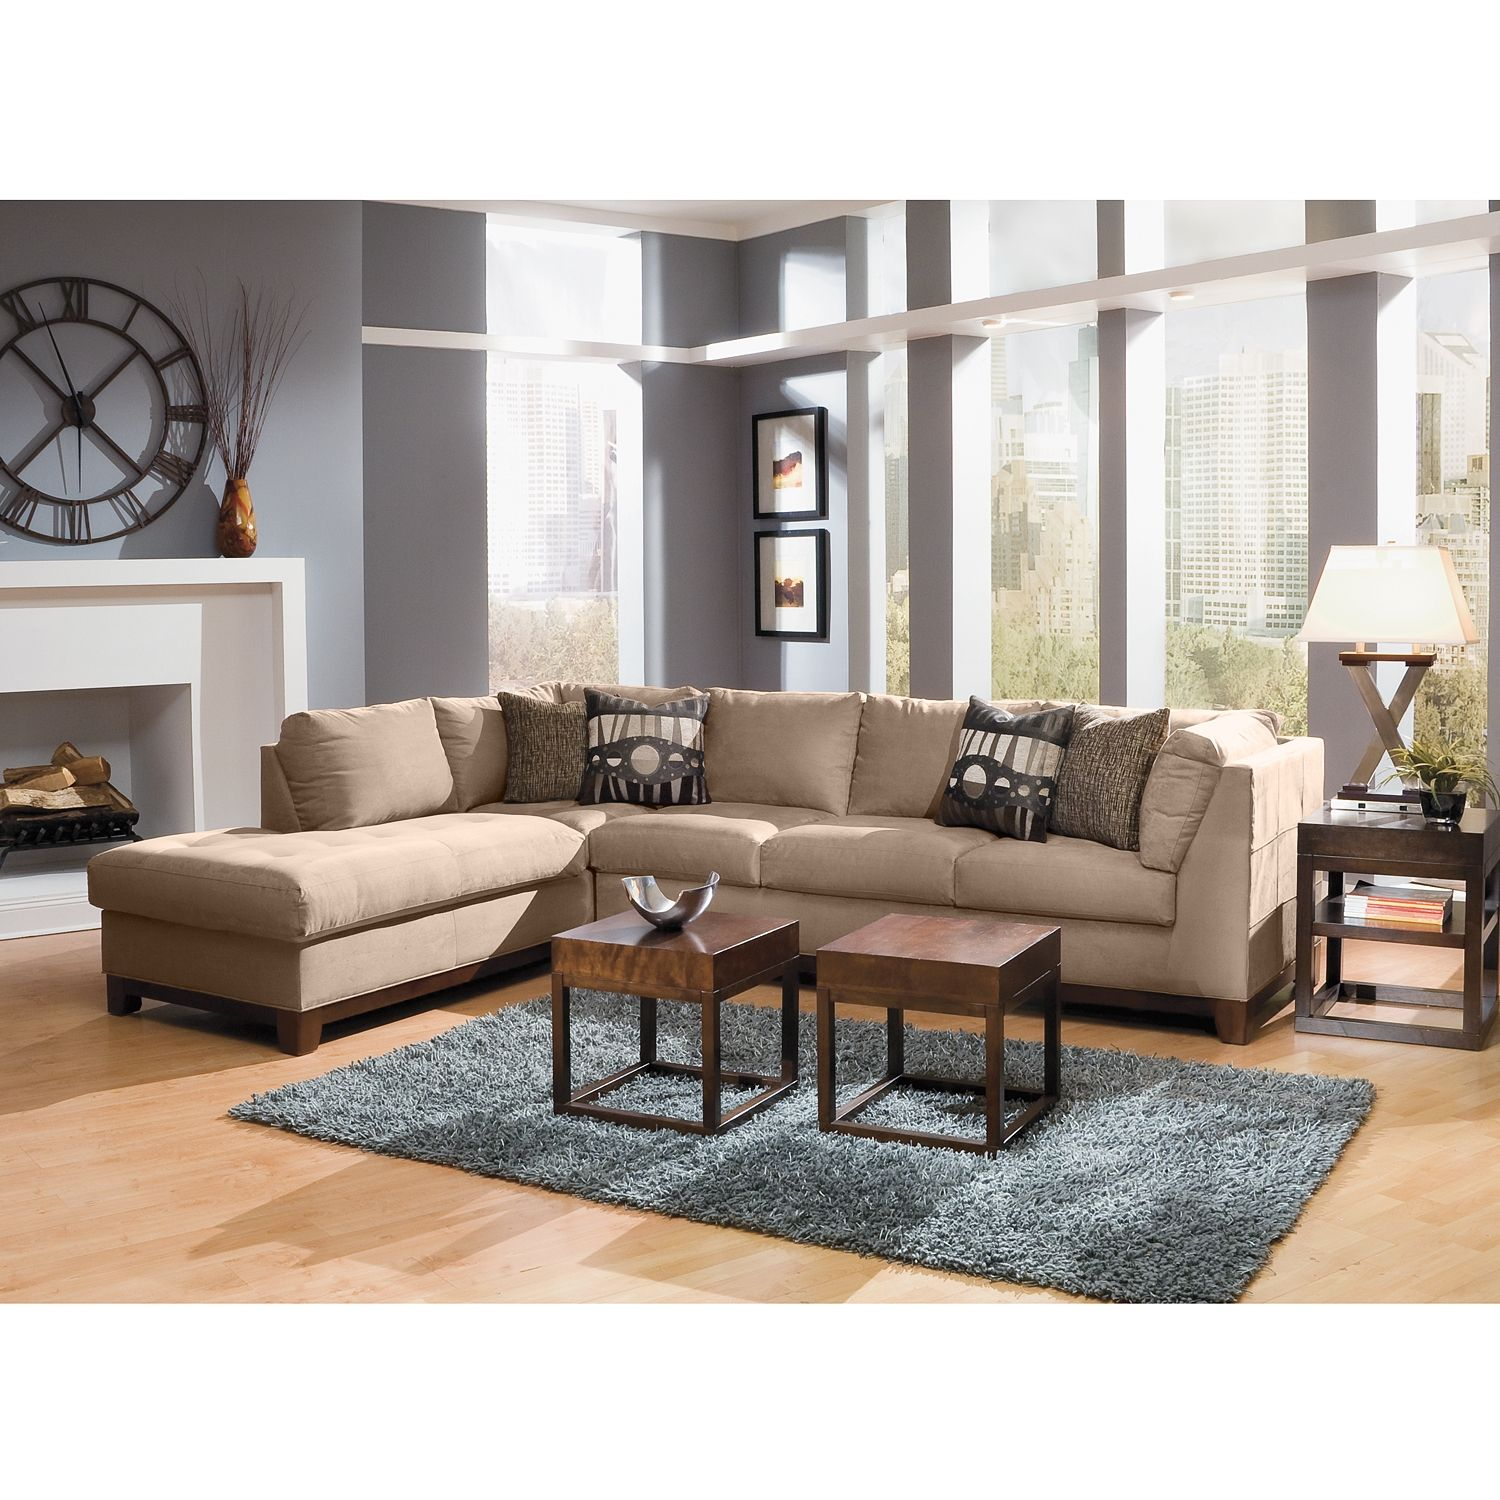 Value City Living Room Furniture Soho Ii 2 Pc Sectional Reverse American Signature Furniture